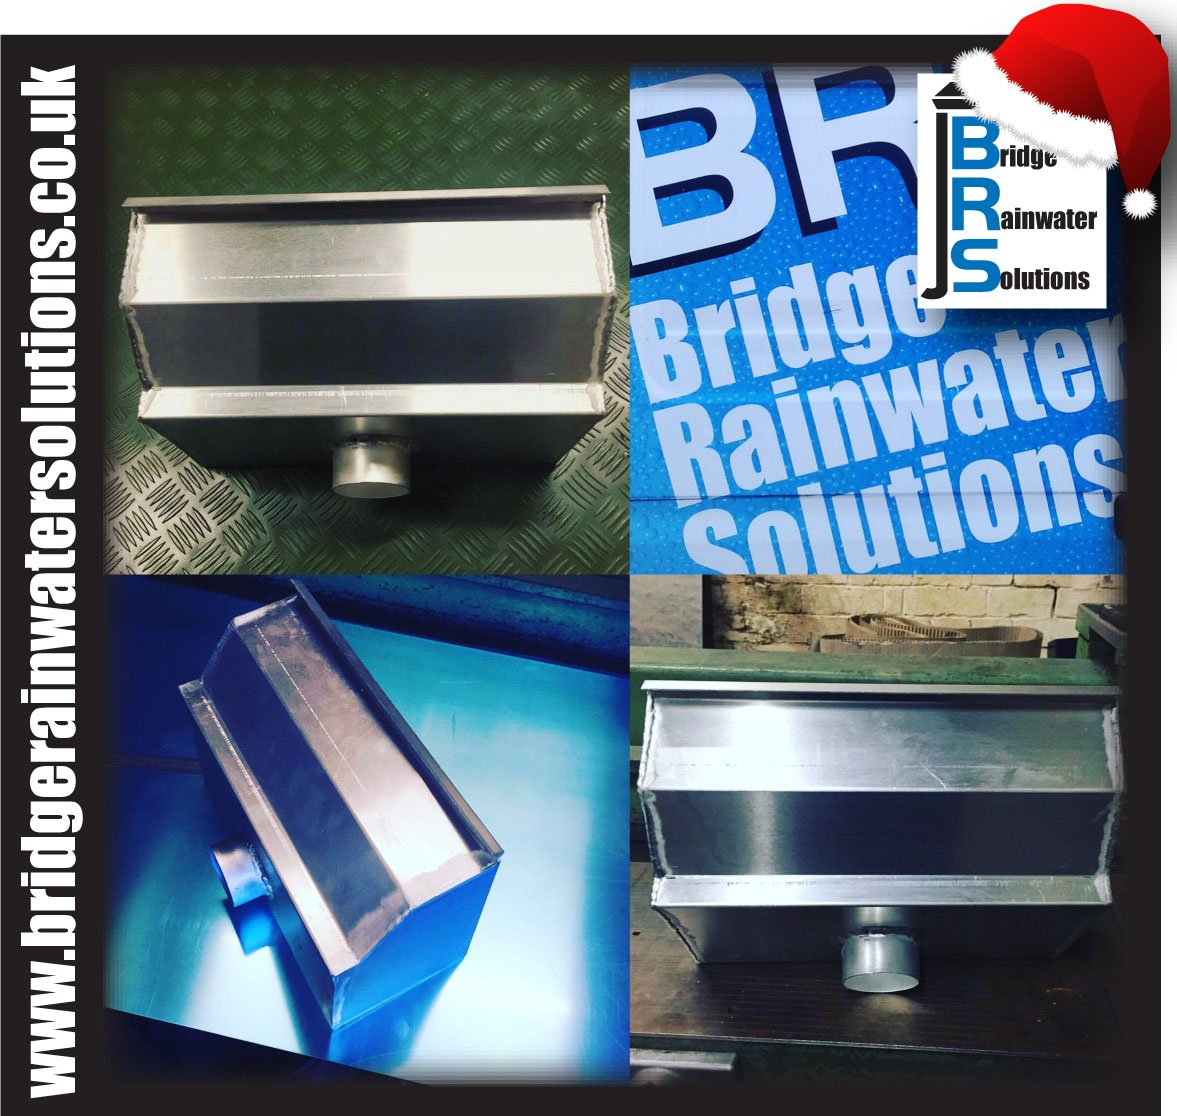 Bespoke aluminium hoppers by Bridge Rainwater Solutions. #bespoke #aluminium #hoppers #gutters #builtnotbought #bridgerainwatersolutions #fabricated #madetoorder #special #somethingspecial #specialised #powdercoated #Manchester #Tameside #picofthday #followme<br>http://pic.twitter.com/7VnpTXp4bw